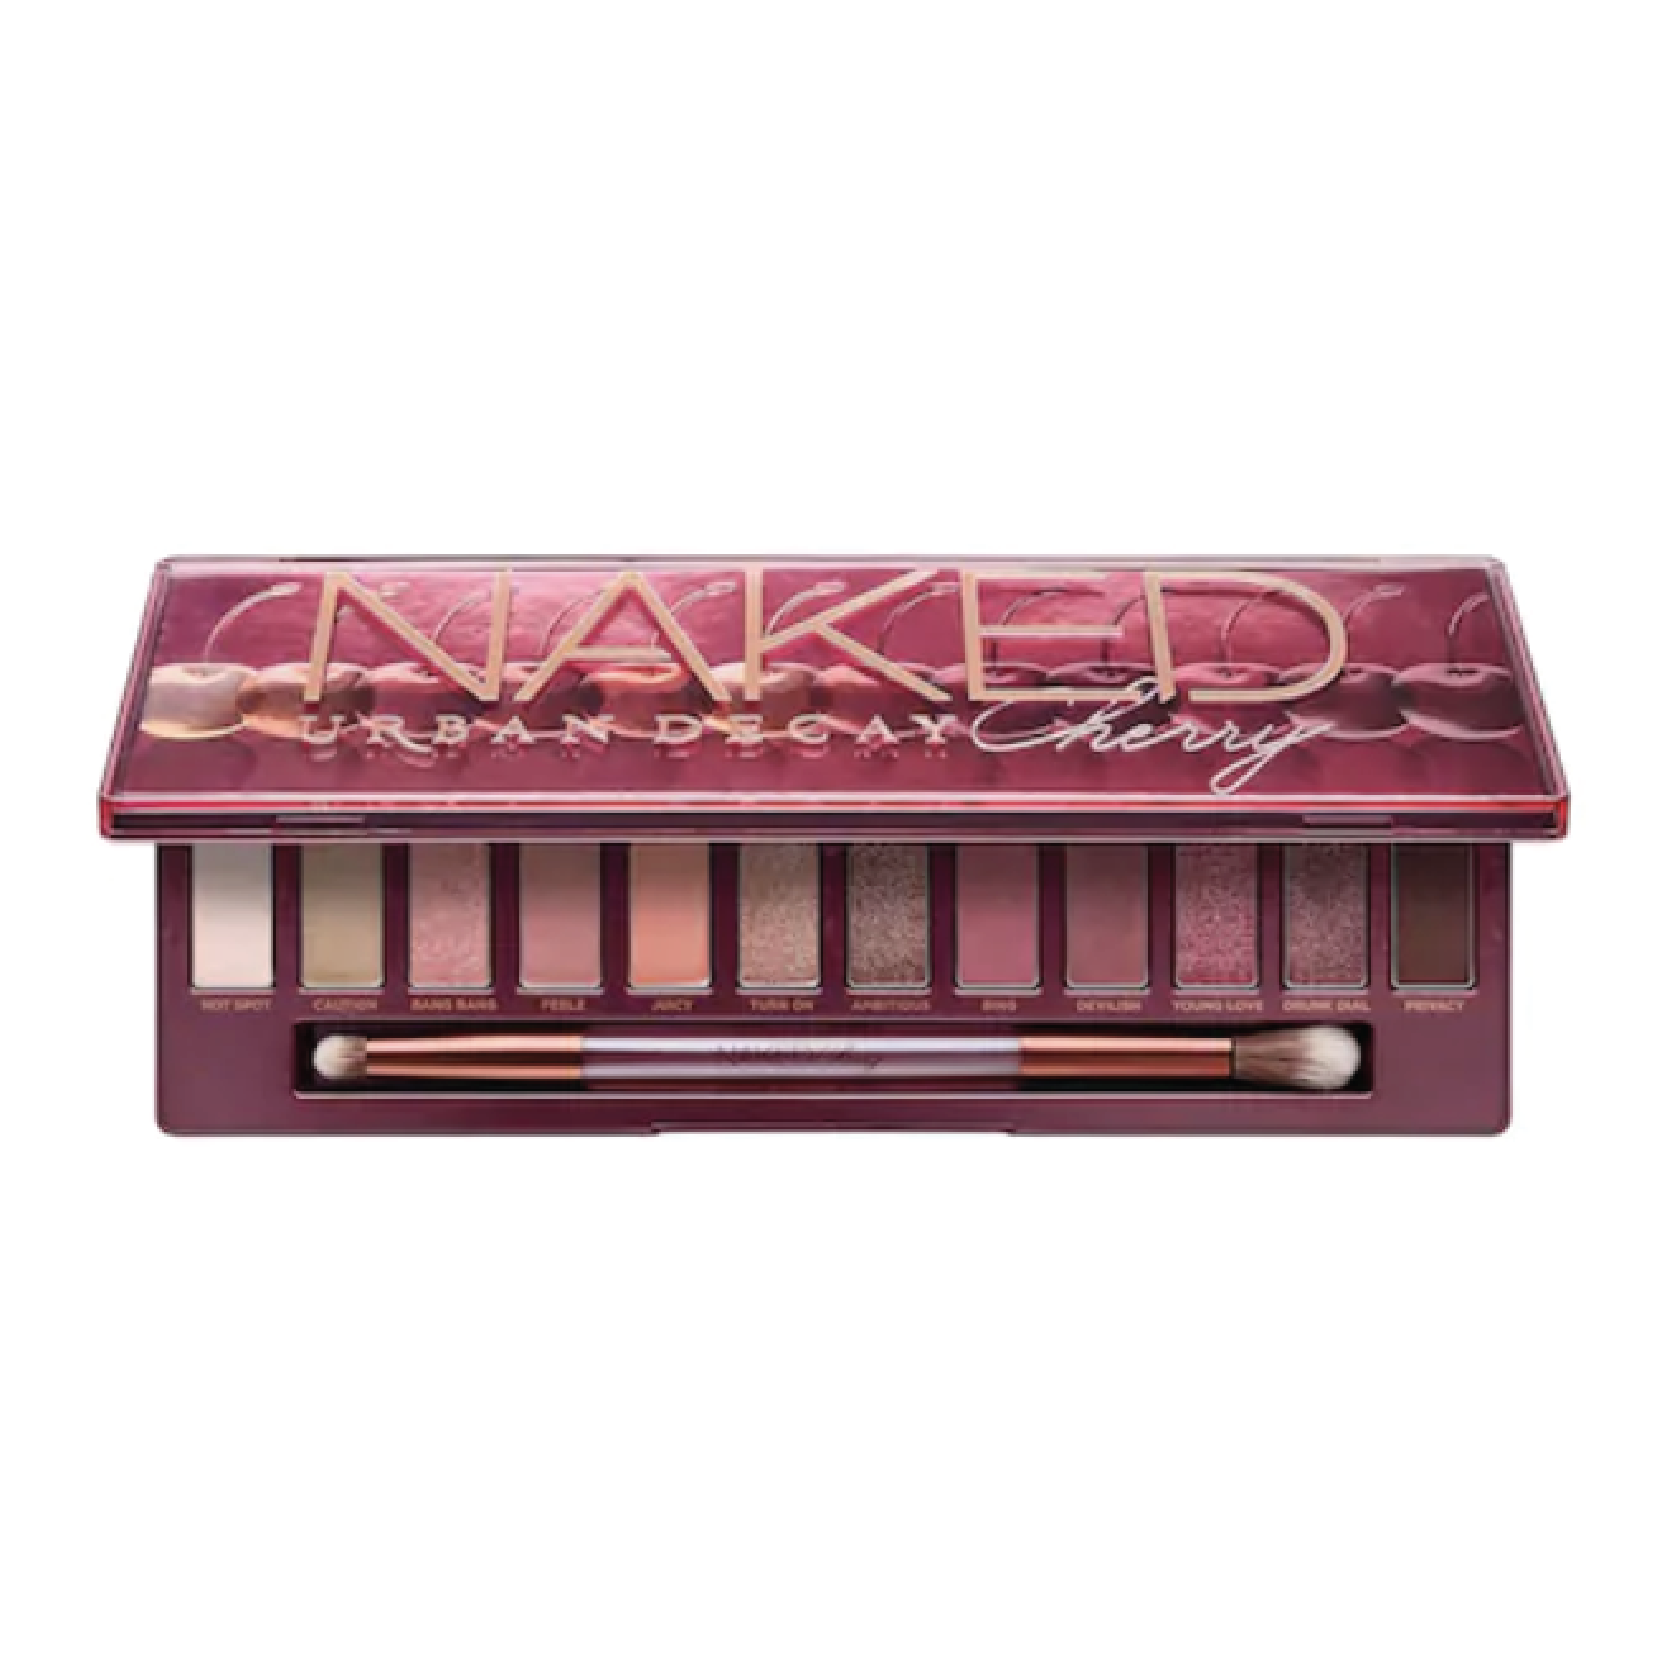 Urban Decay Naked Cherry Eyeshadow Palette - $49 at SephoraCherry shades are super in for winter and this palette's pink tones can easily transition into spring. I've been eyeing this all season and the Naked palettes are legendary!